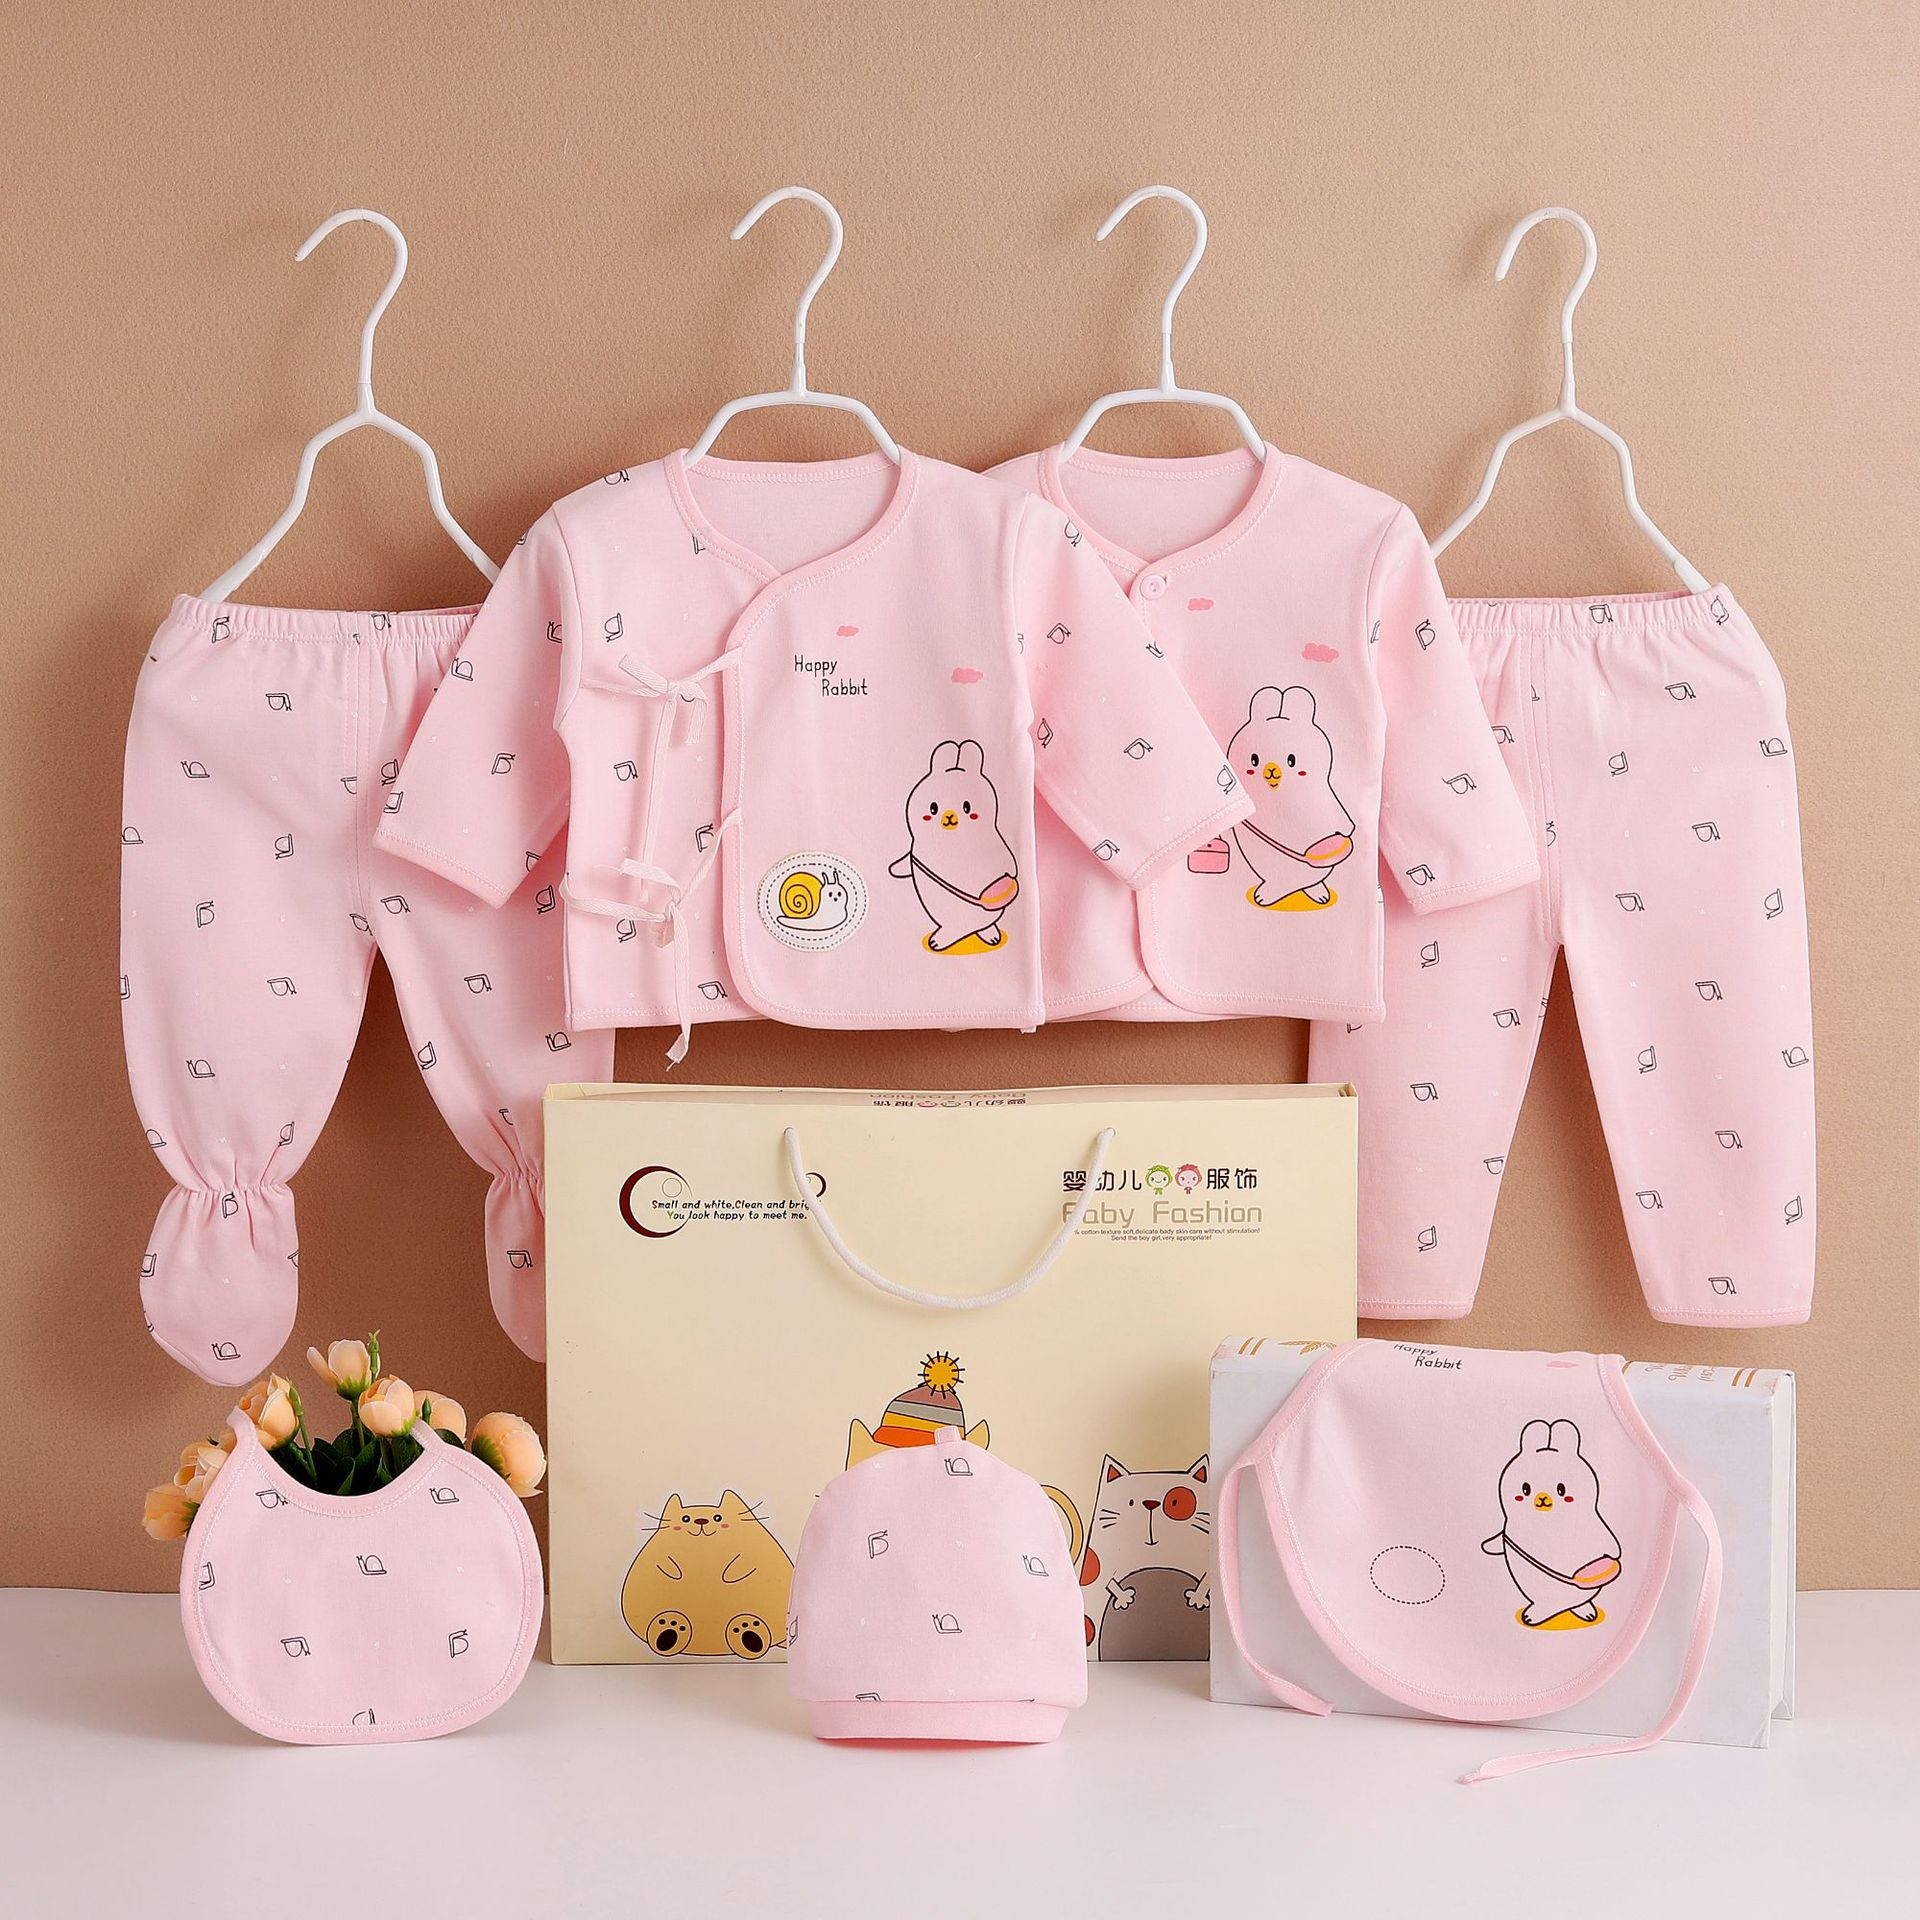 Infants 0-3 Month Cotton And Wool Baby Clothes Thin Cotton Seven Sets Of Dual File Gown Newborns Gift Box